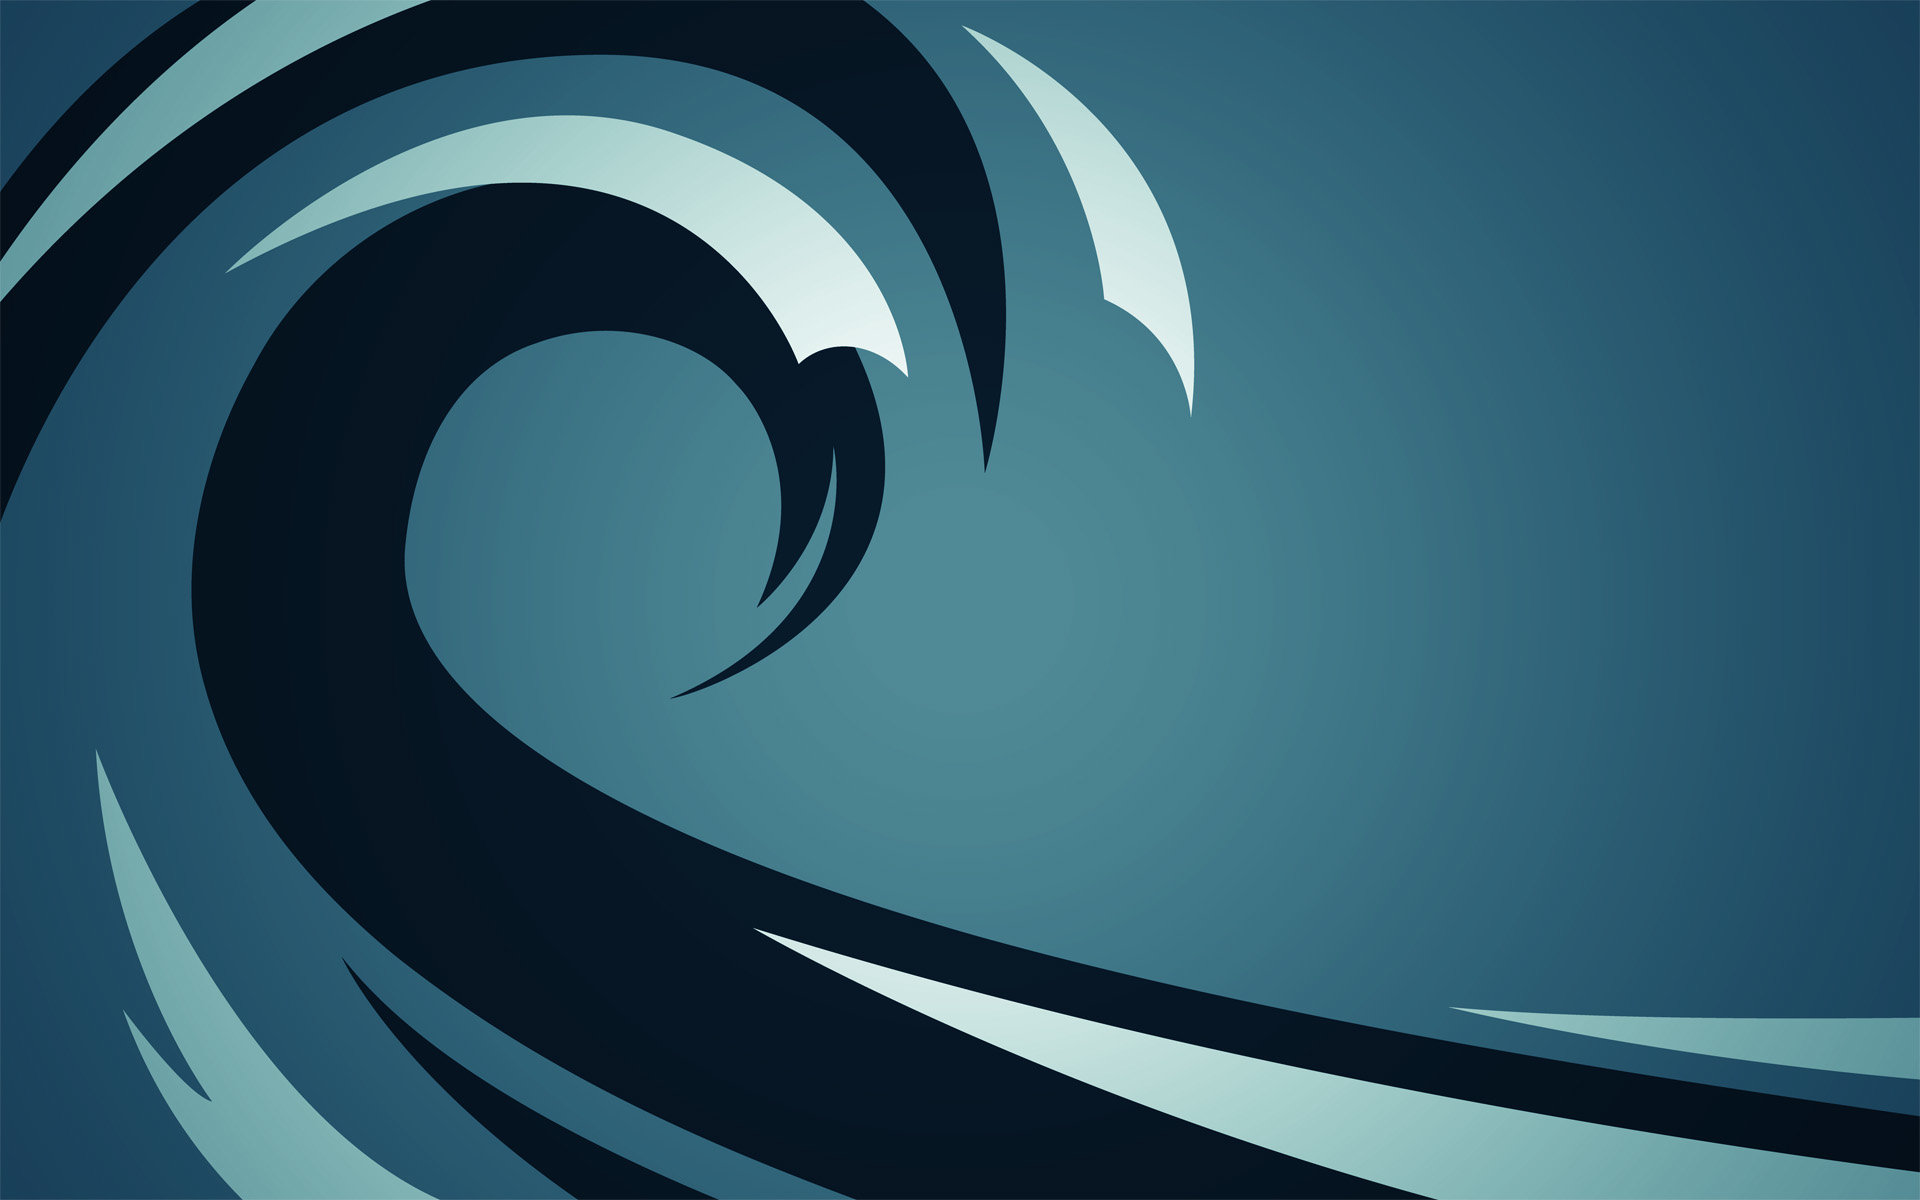 Download hd 1920x1200 Abstract wave desktop wallpaper ID:450948 for free